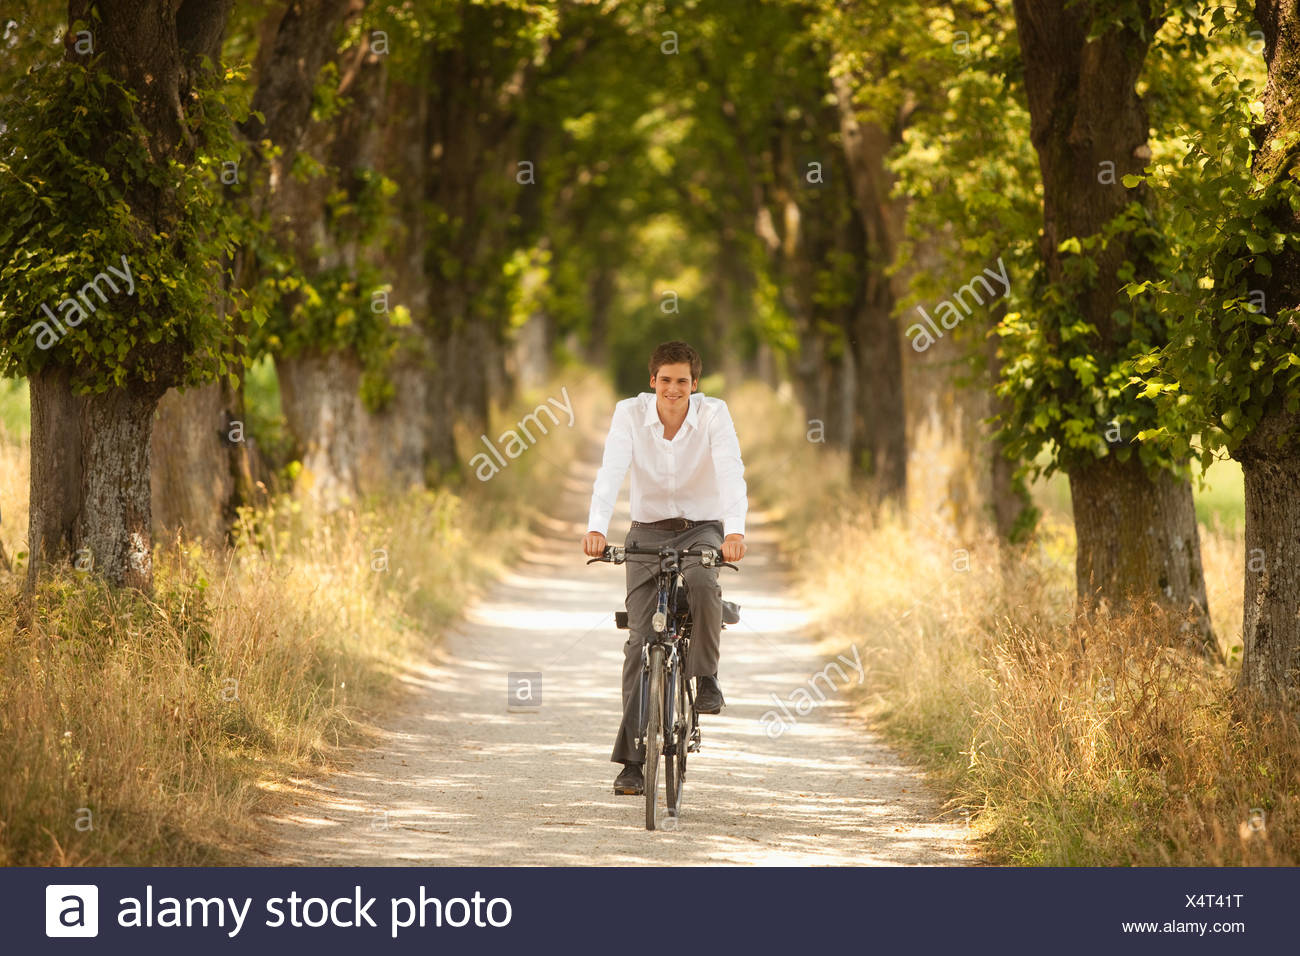 Young businessman riding along tree-lined road on bicycle - Stock Image